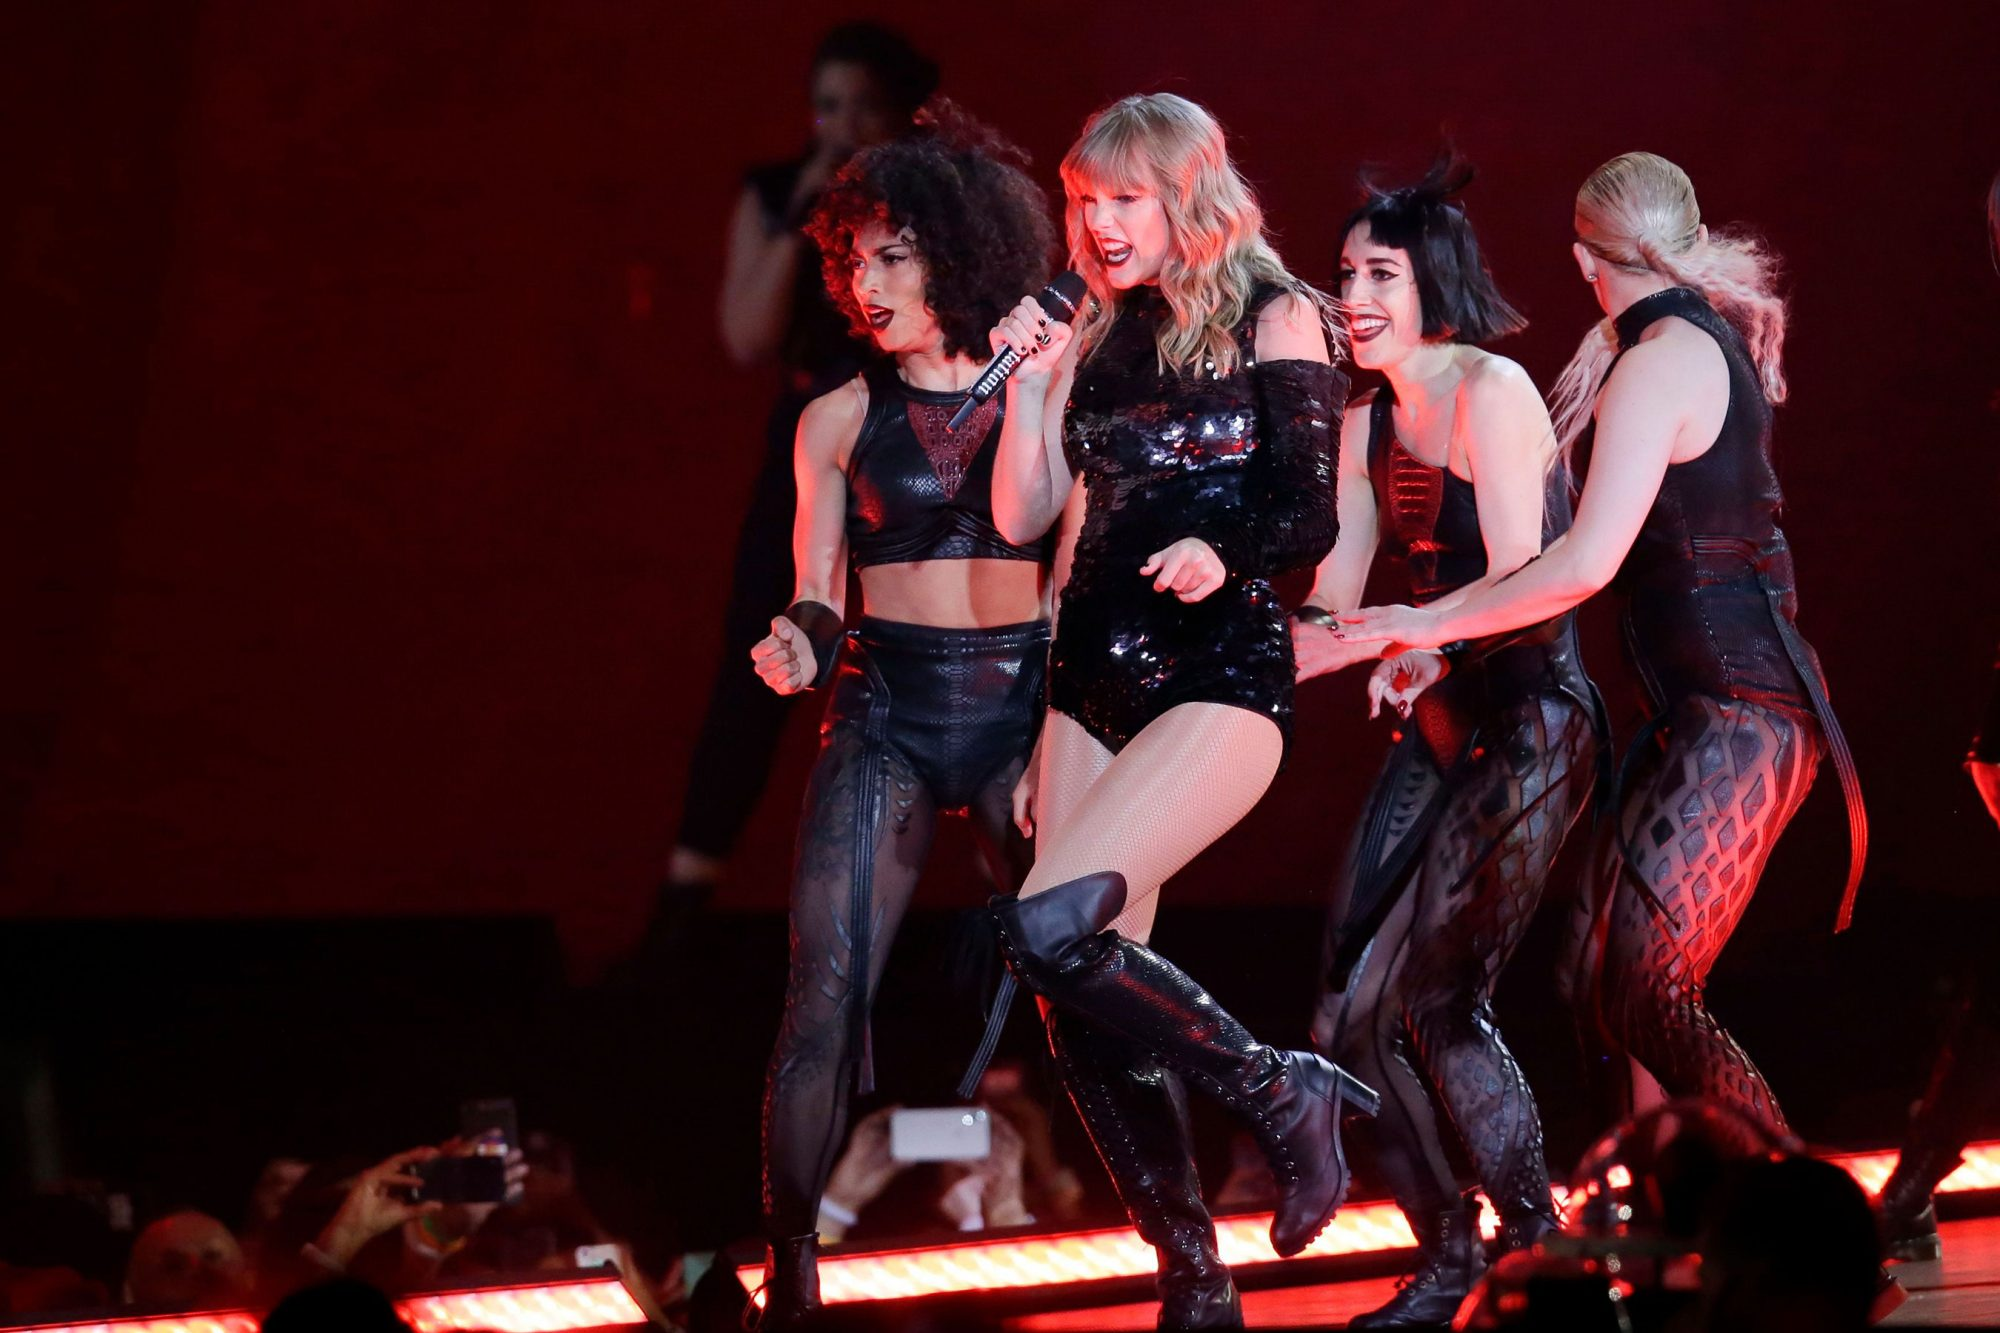 Taylor Swift in Concert - , AZ, Glendale, USA - 08 May 2018